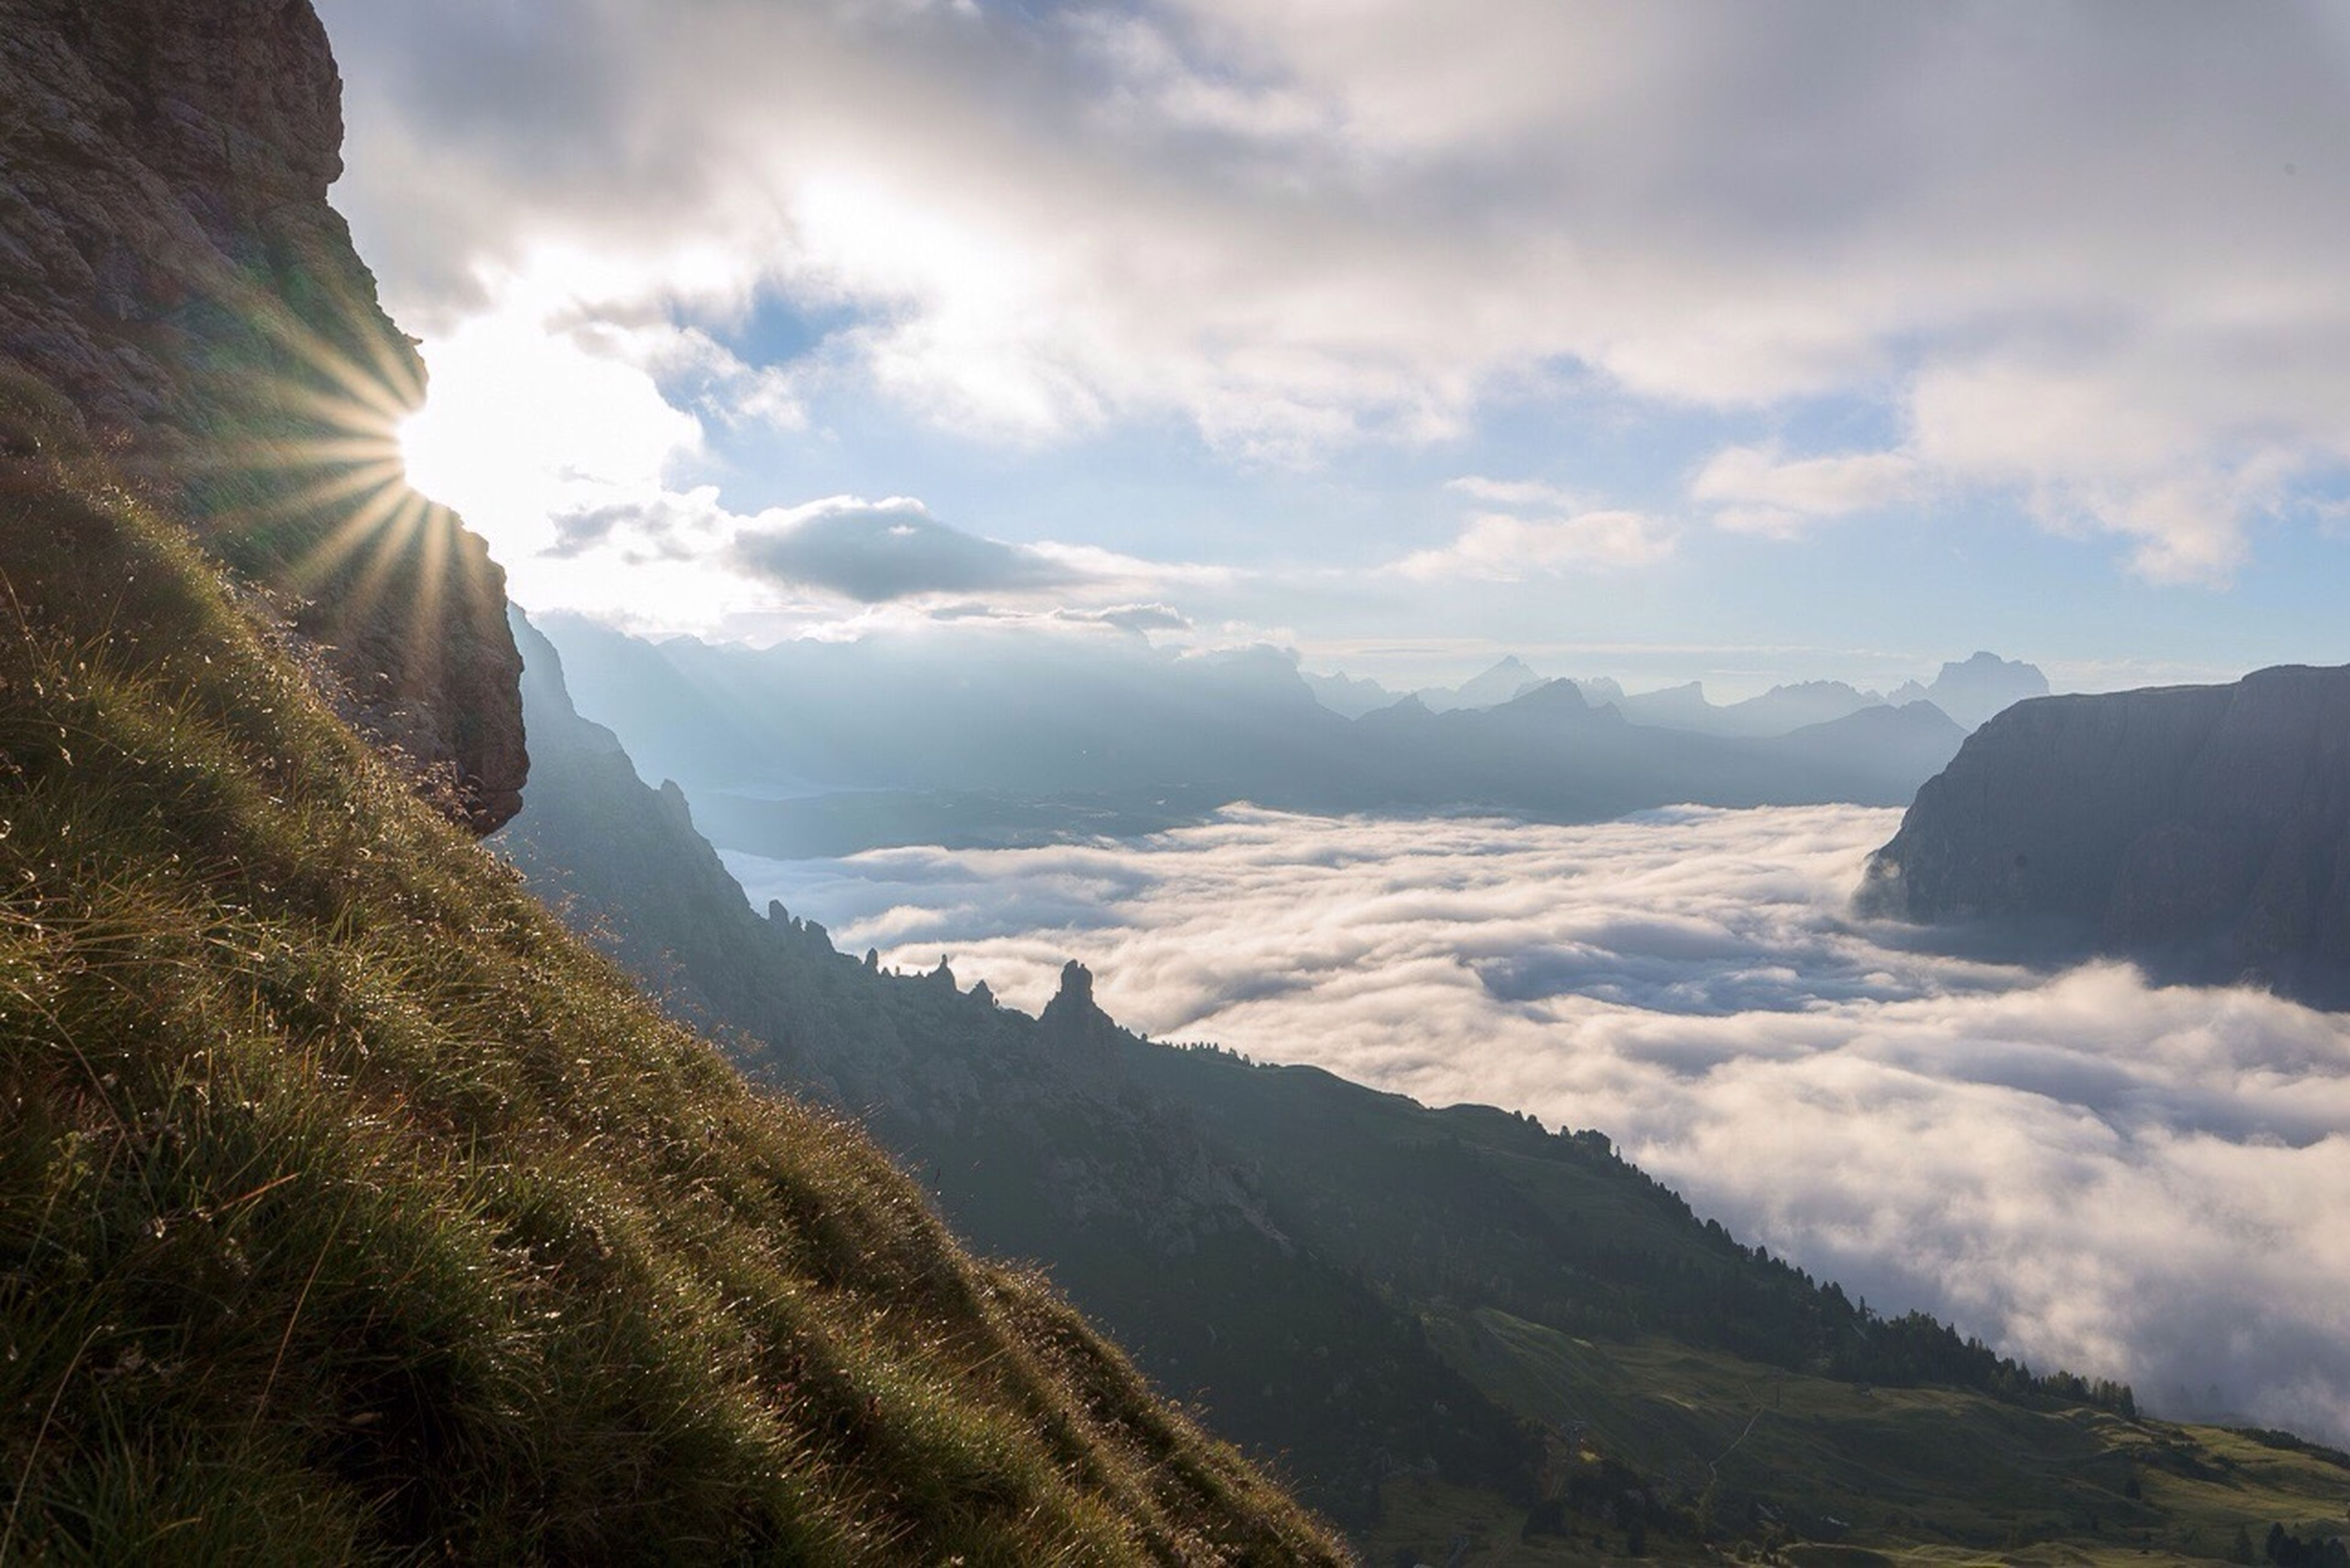 mountain, scenics, tranquil scene, sunbeam, beauty in nature, tranquility, sunlight, landscape, mountain range, lens flare, non-urban scene, idyllic, nature, sun, cloud - sky, majestic, sky, mountain peak, remote, valley, cloud, tourism, day, sunny, aerial view, outdoors, cloudscape, physical geography, high up, bright, countryside, solitude